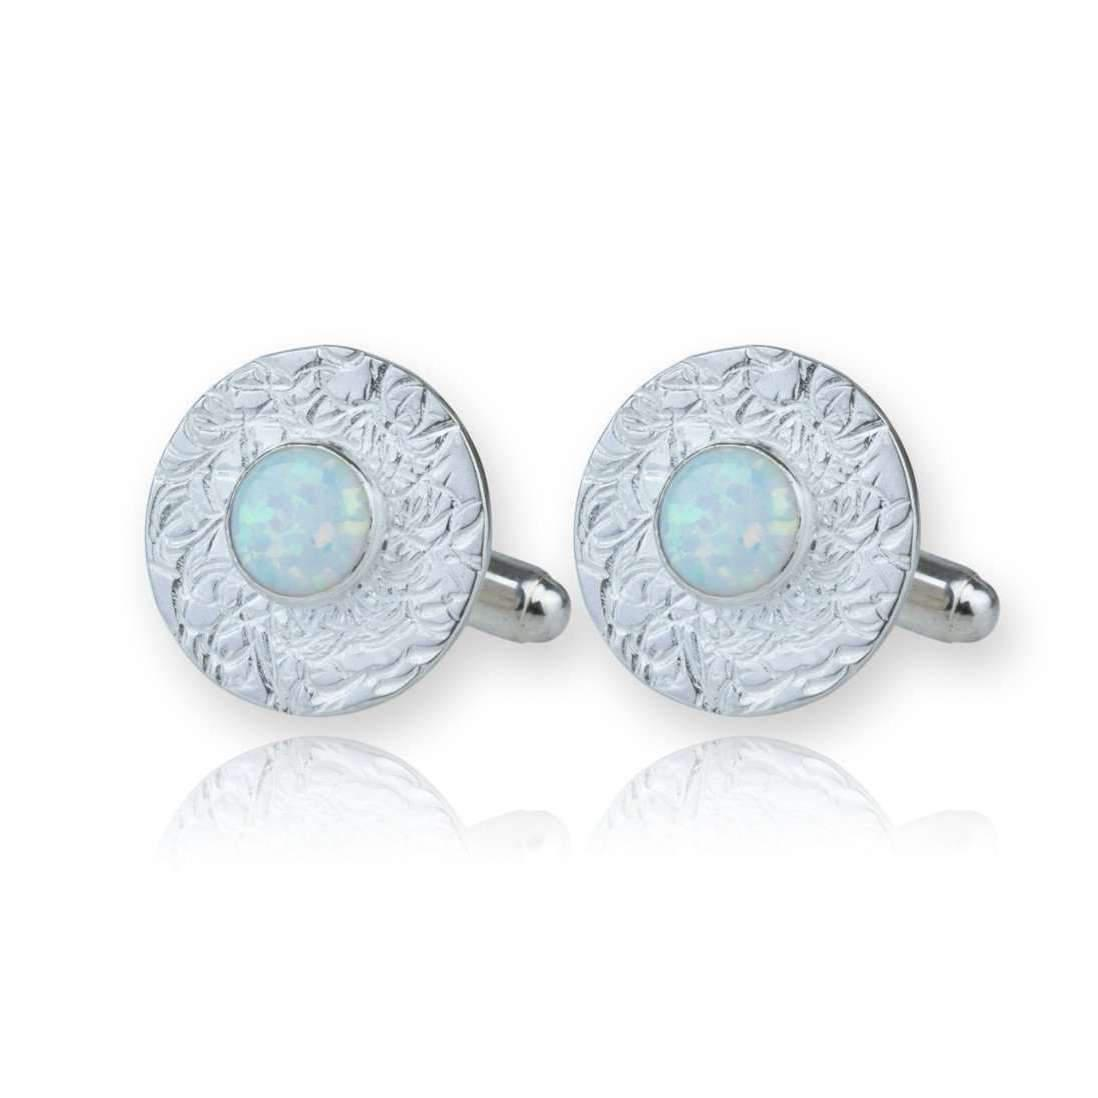 Lavan Sterling Silver Hand Etched Cufflinks With White Opals T3au2